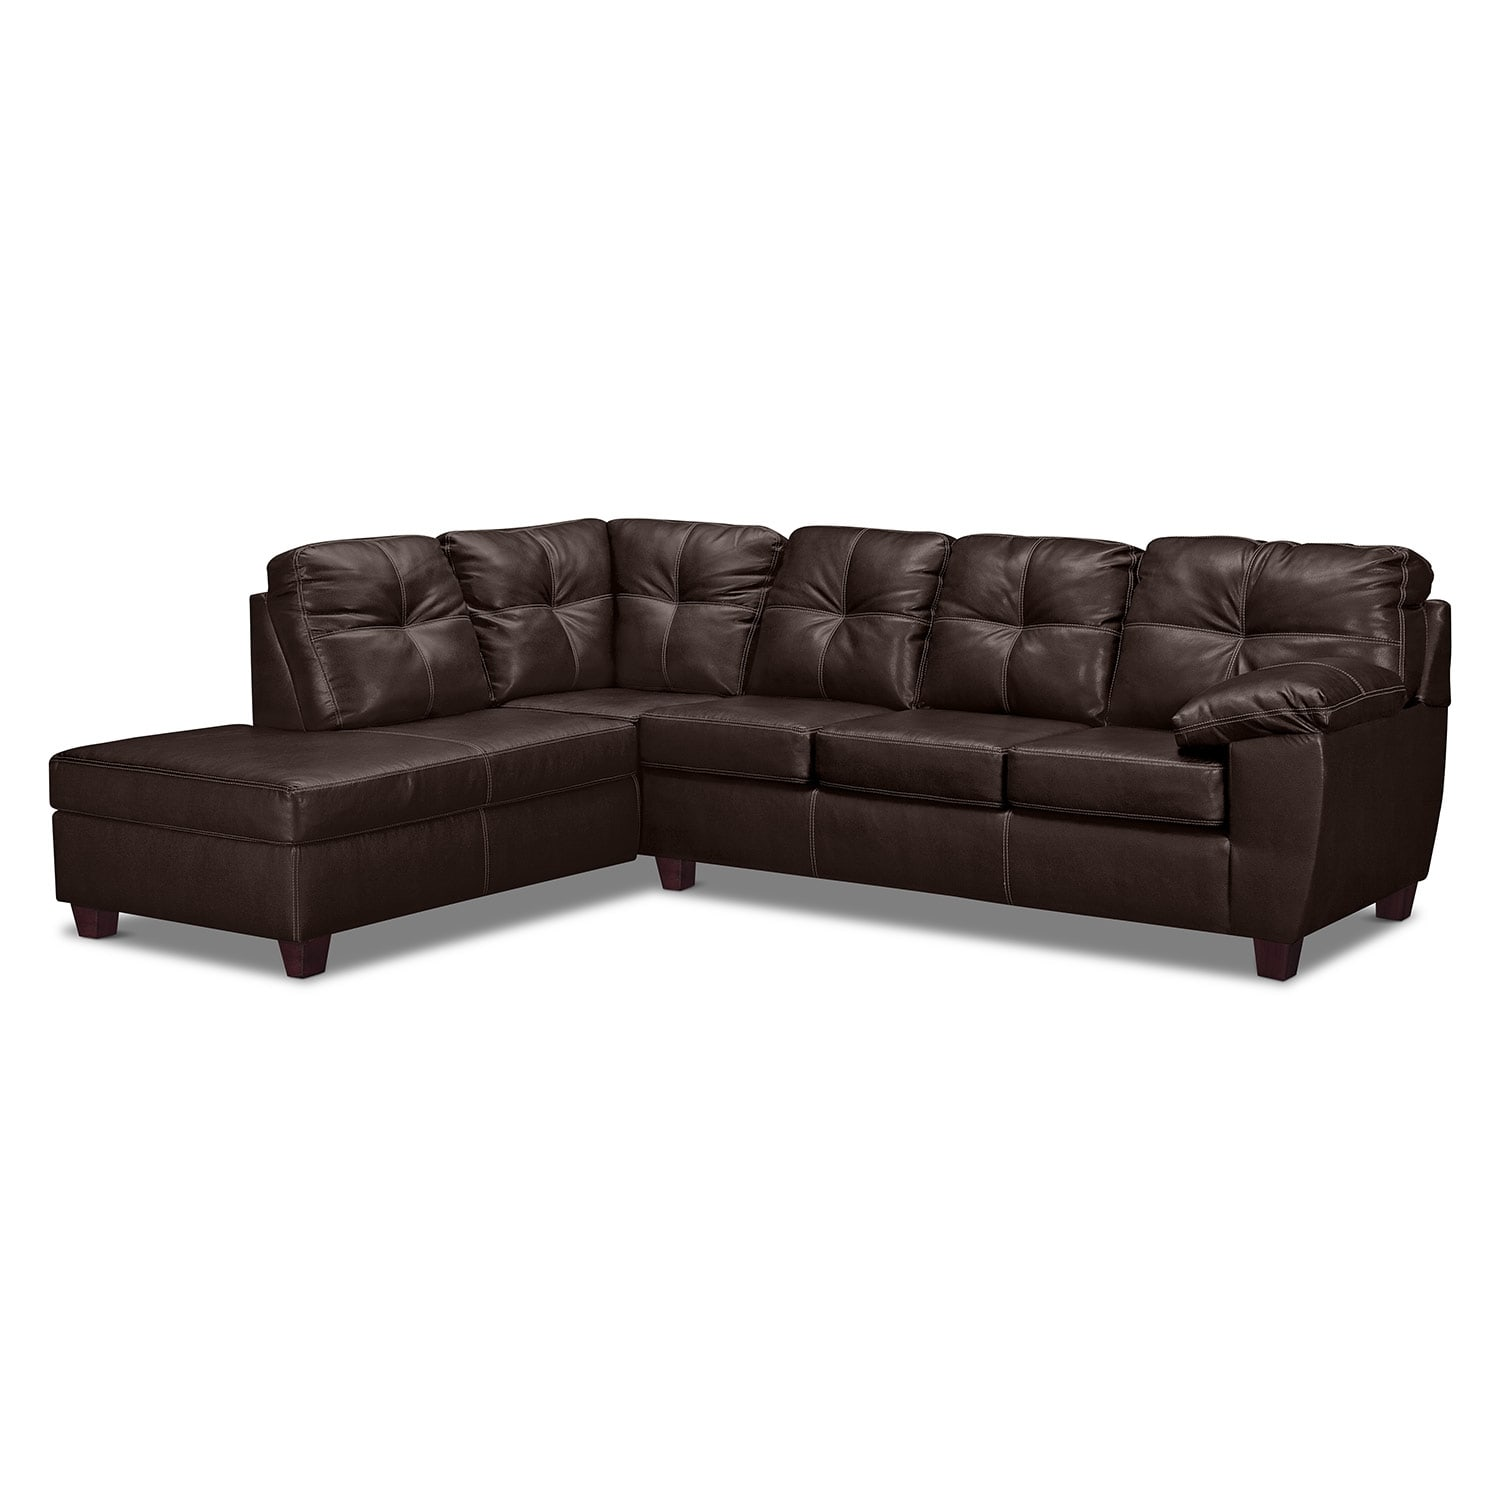 Rialto 2-Piece Sectional with Left-Facing Chaise - Brown